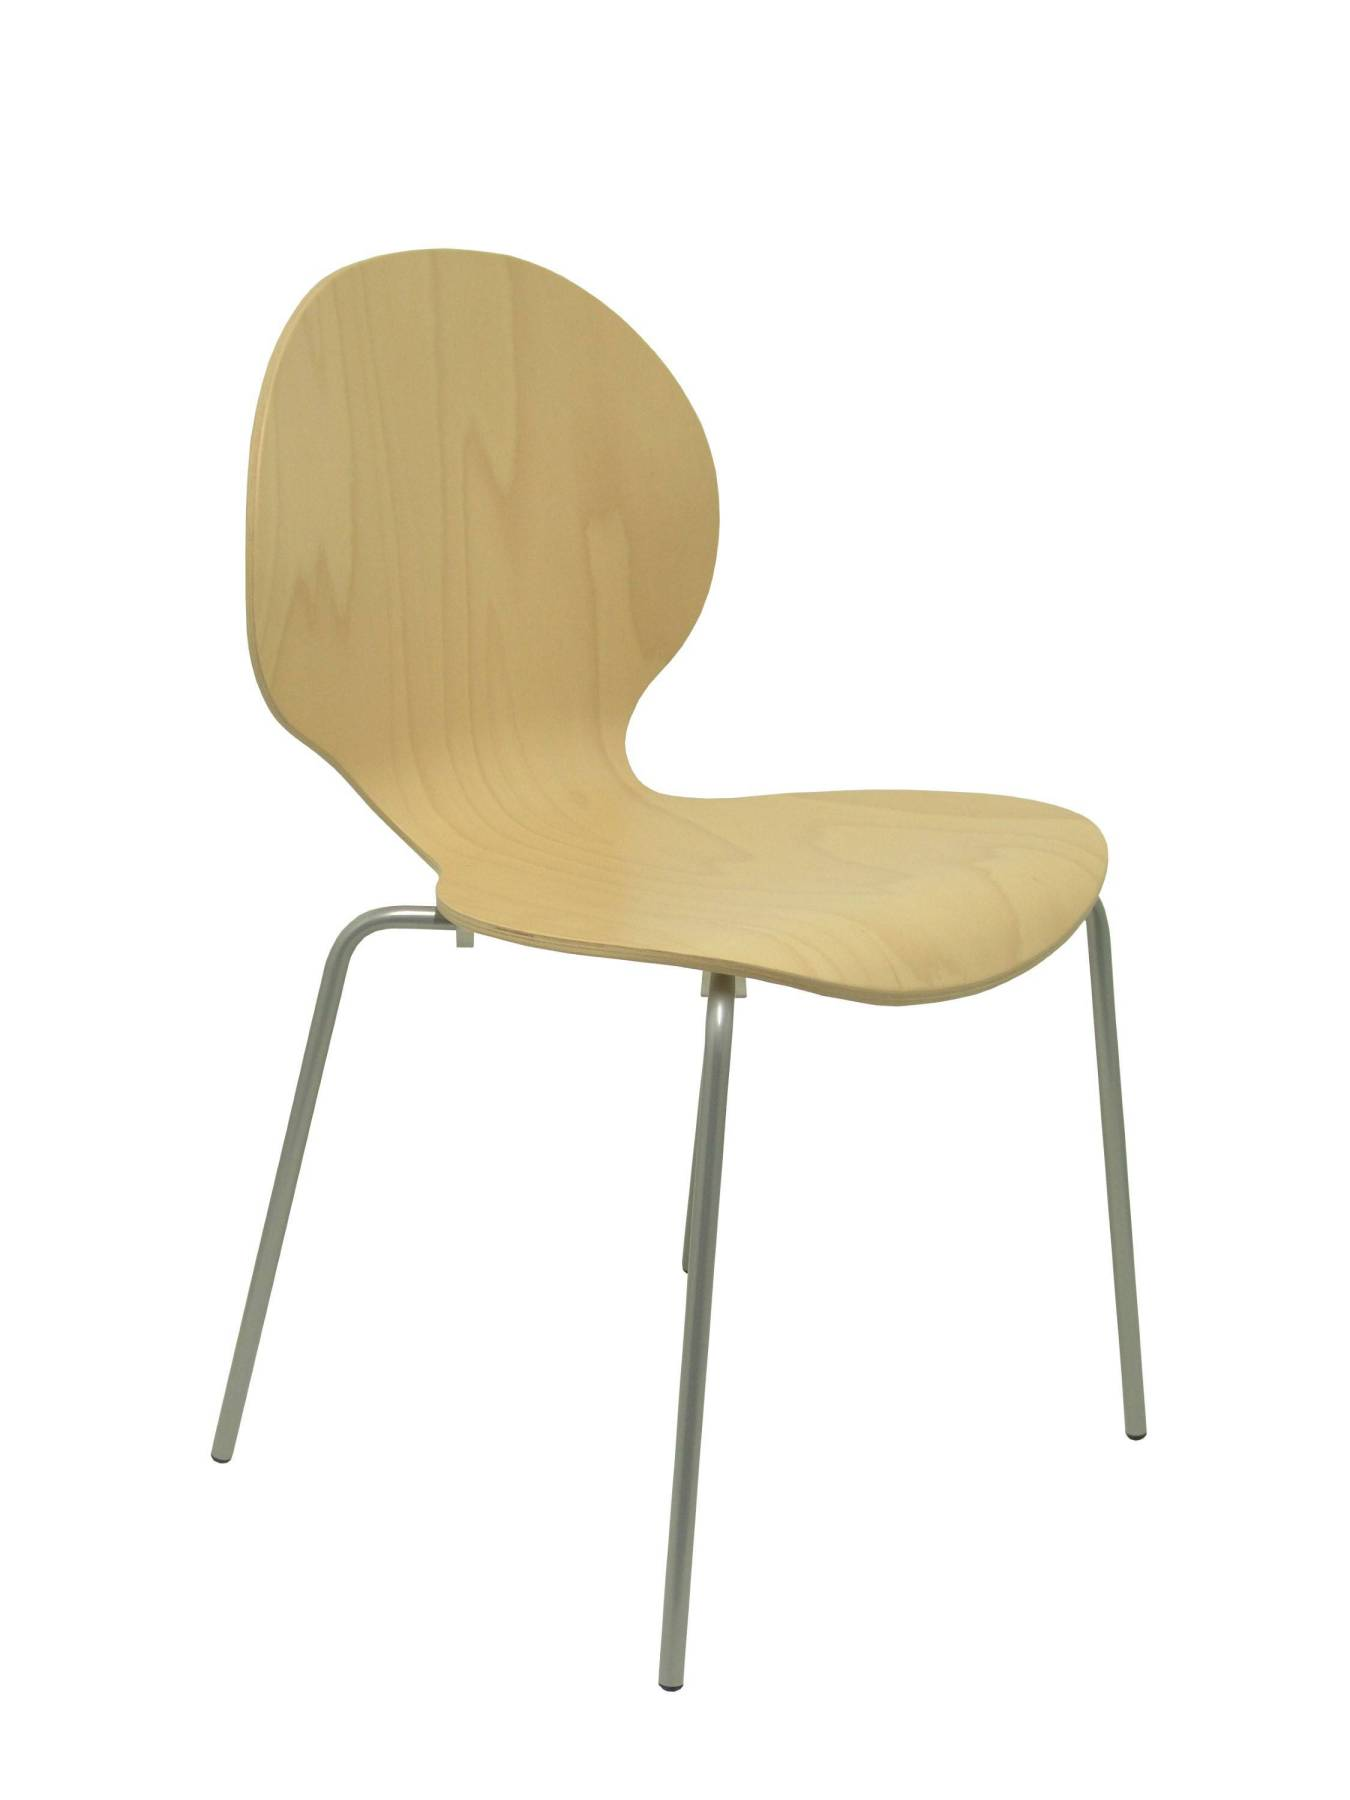 Pack 4 Chairs Confident Structure Gray-Seat And Backrest Beech Wood PIQUERAS & CURLED Model Peñas